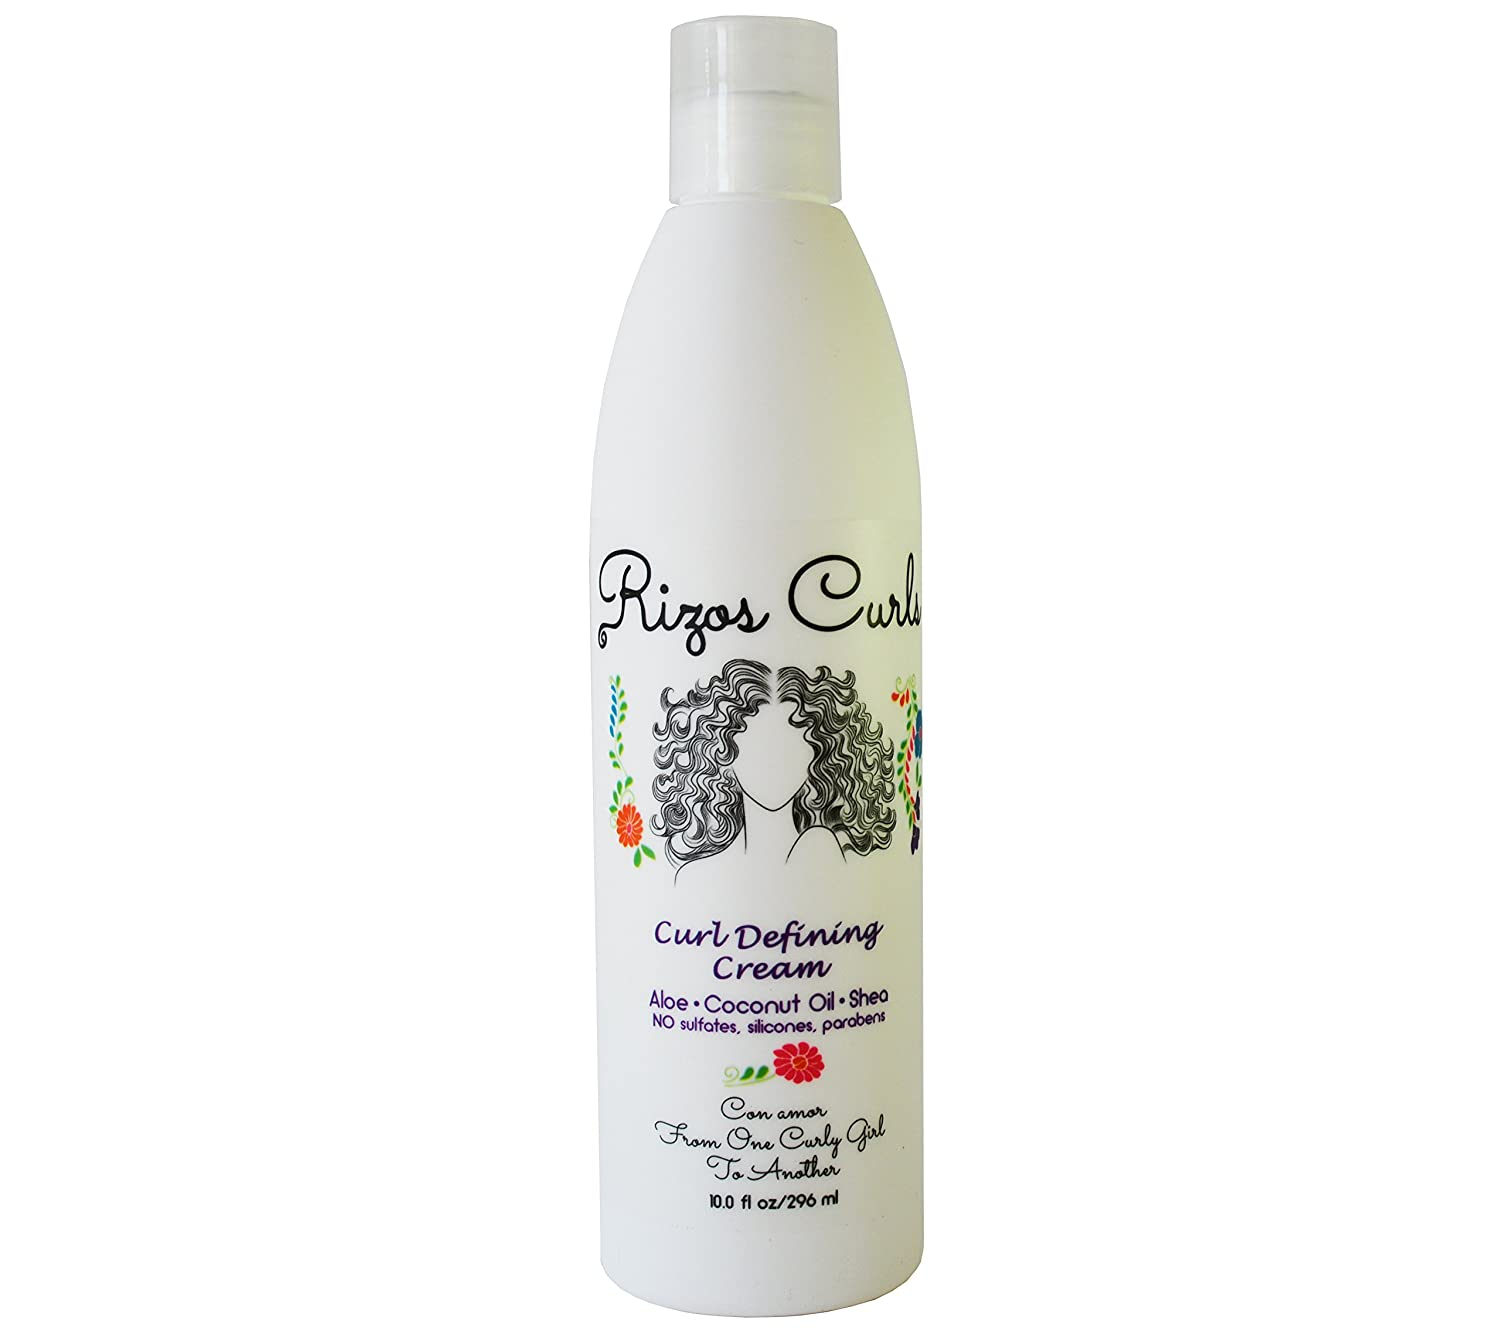 Rizos Curls Curl Defining Cream for Curly Hair. For Defined, Bouncy, Shiny, Frizz-Free, Voluminous Curls. With Aloe Vera, Shea Butter & Coconut Oil.